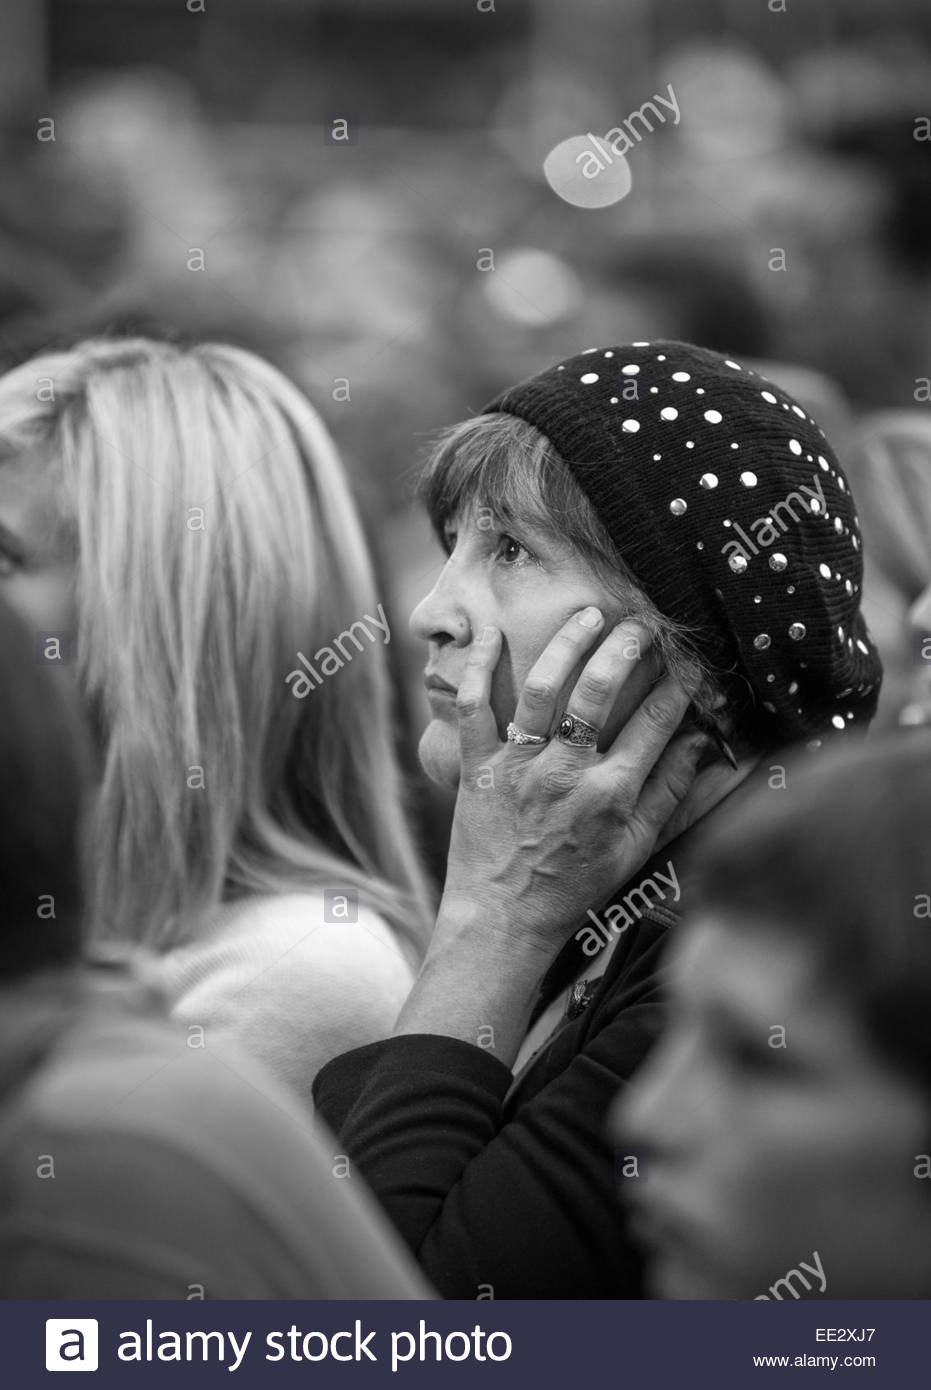 Woman in a crowd, visibly moved (touched) - Stock Image